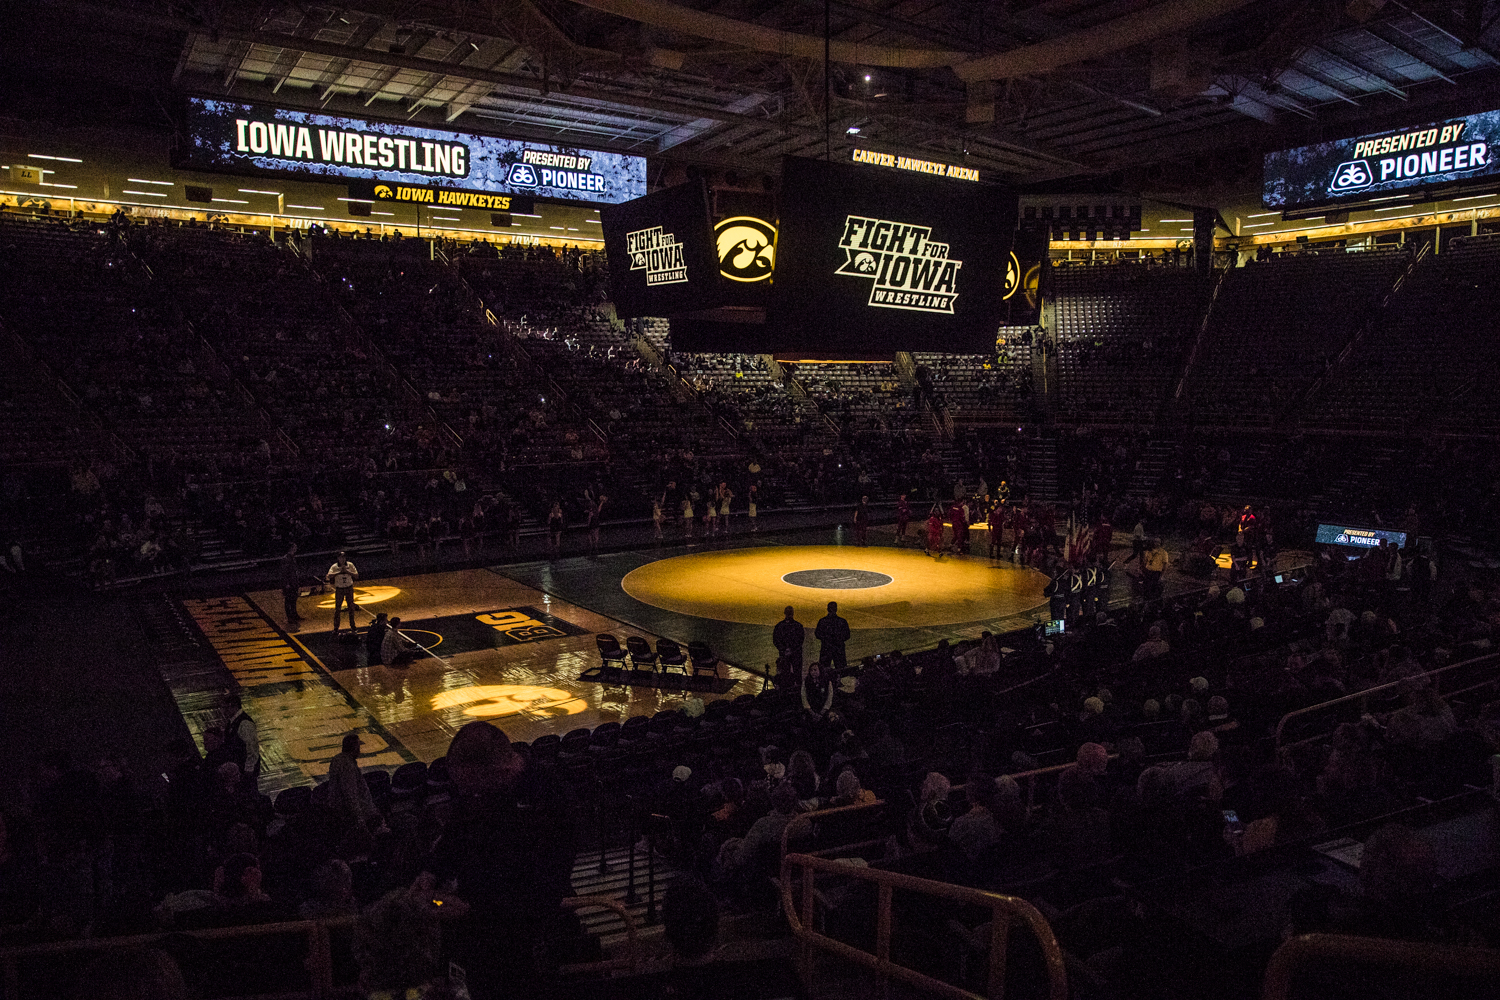 Lights+are+dimmed+during+a+wrestling+match+between+Iowa+and+Indiana+at+Carver-Hawkeye+Arena+on+Friday%2C+February+15%2C+2019.+The+Hawkeyes%2C+celebrating+senior+night%2C+defeated+the+Hoosiers+37-9.